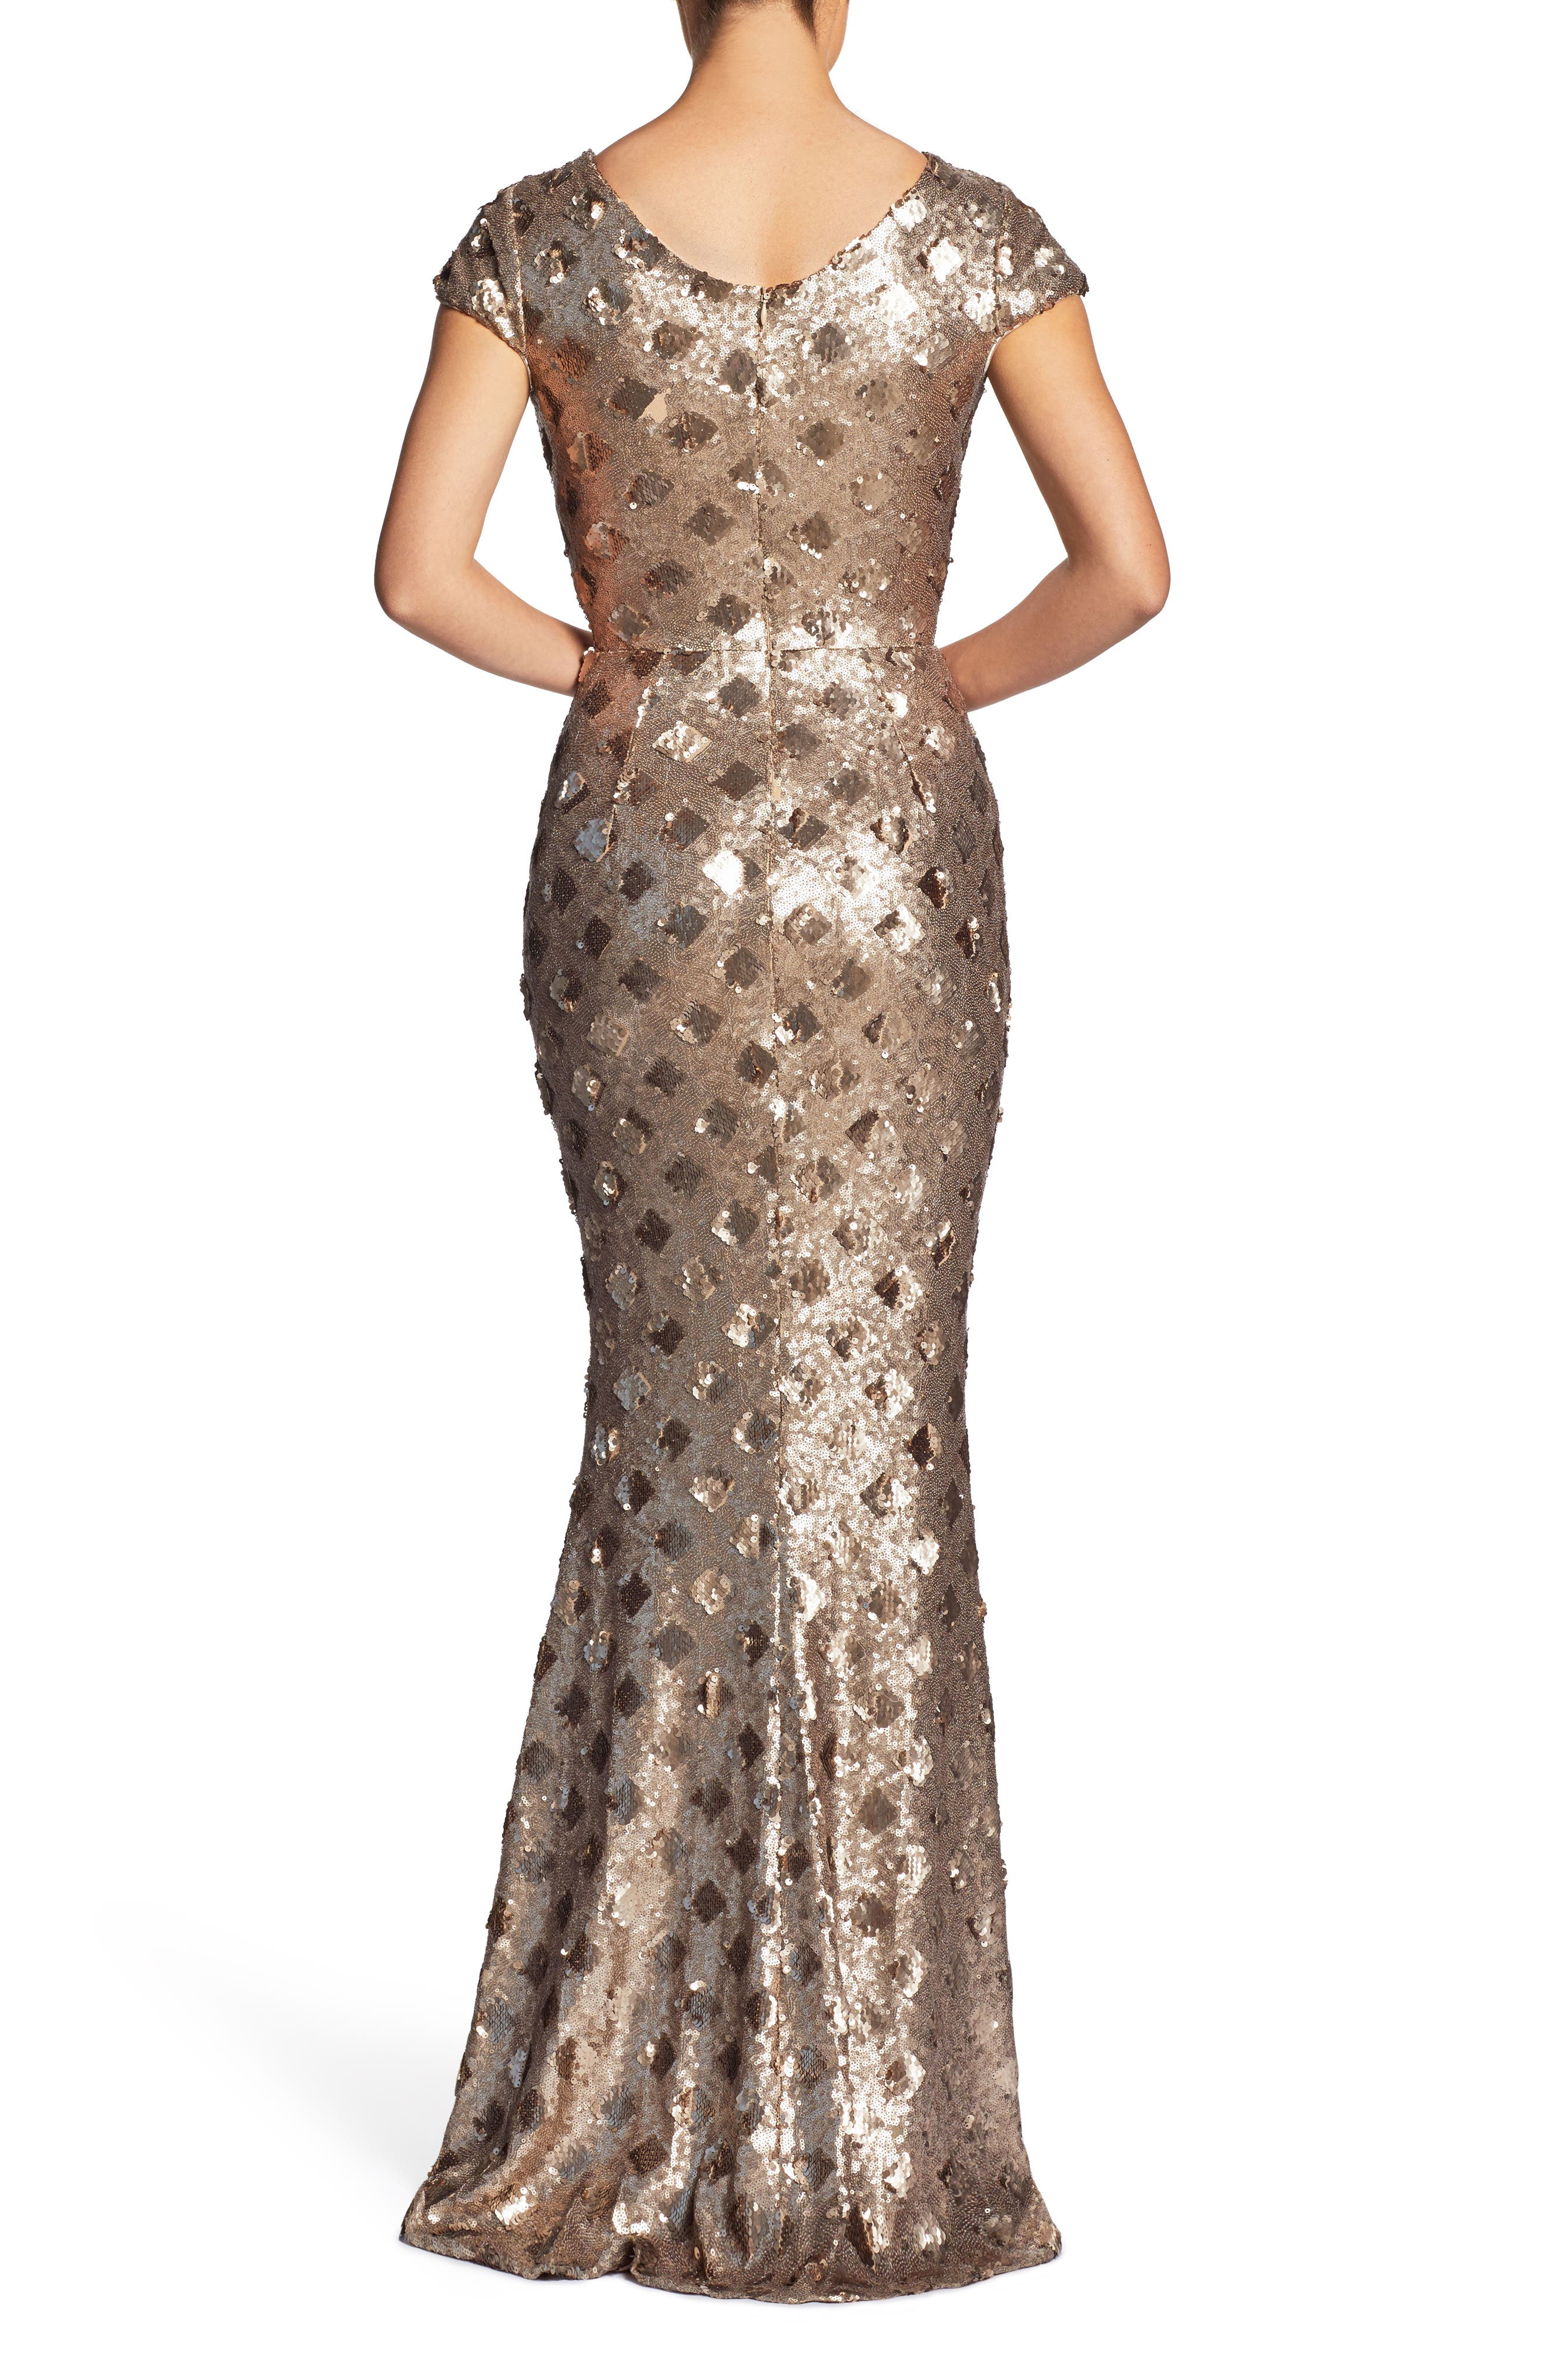 DRESS THE POPULATION,                             Lina Patterned Sequin Trumpet Gown,                             Alternate thumbnail 2, color,                             710